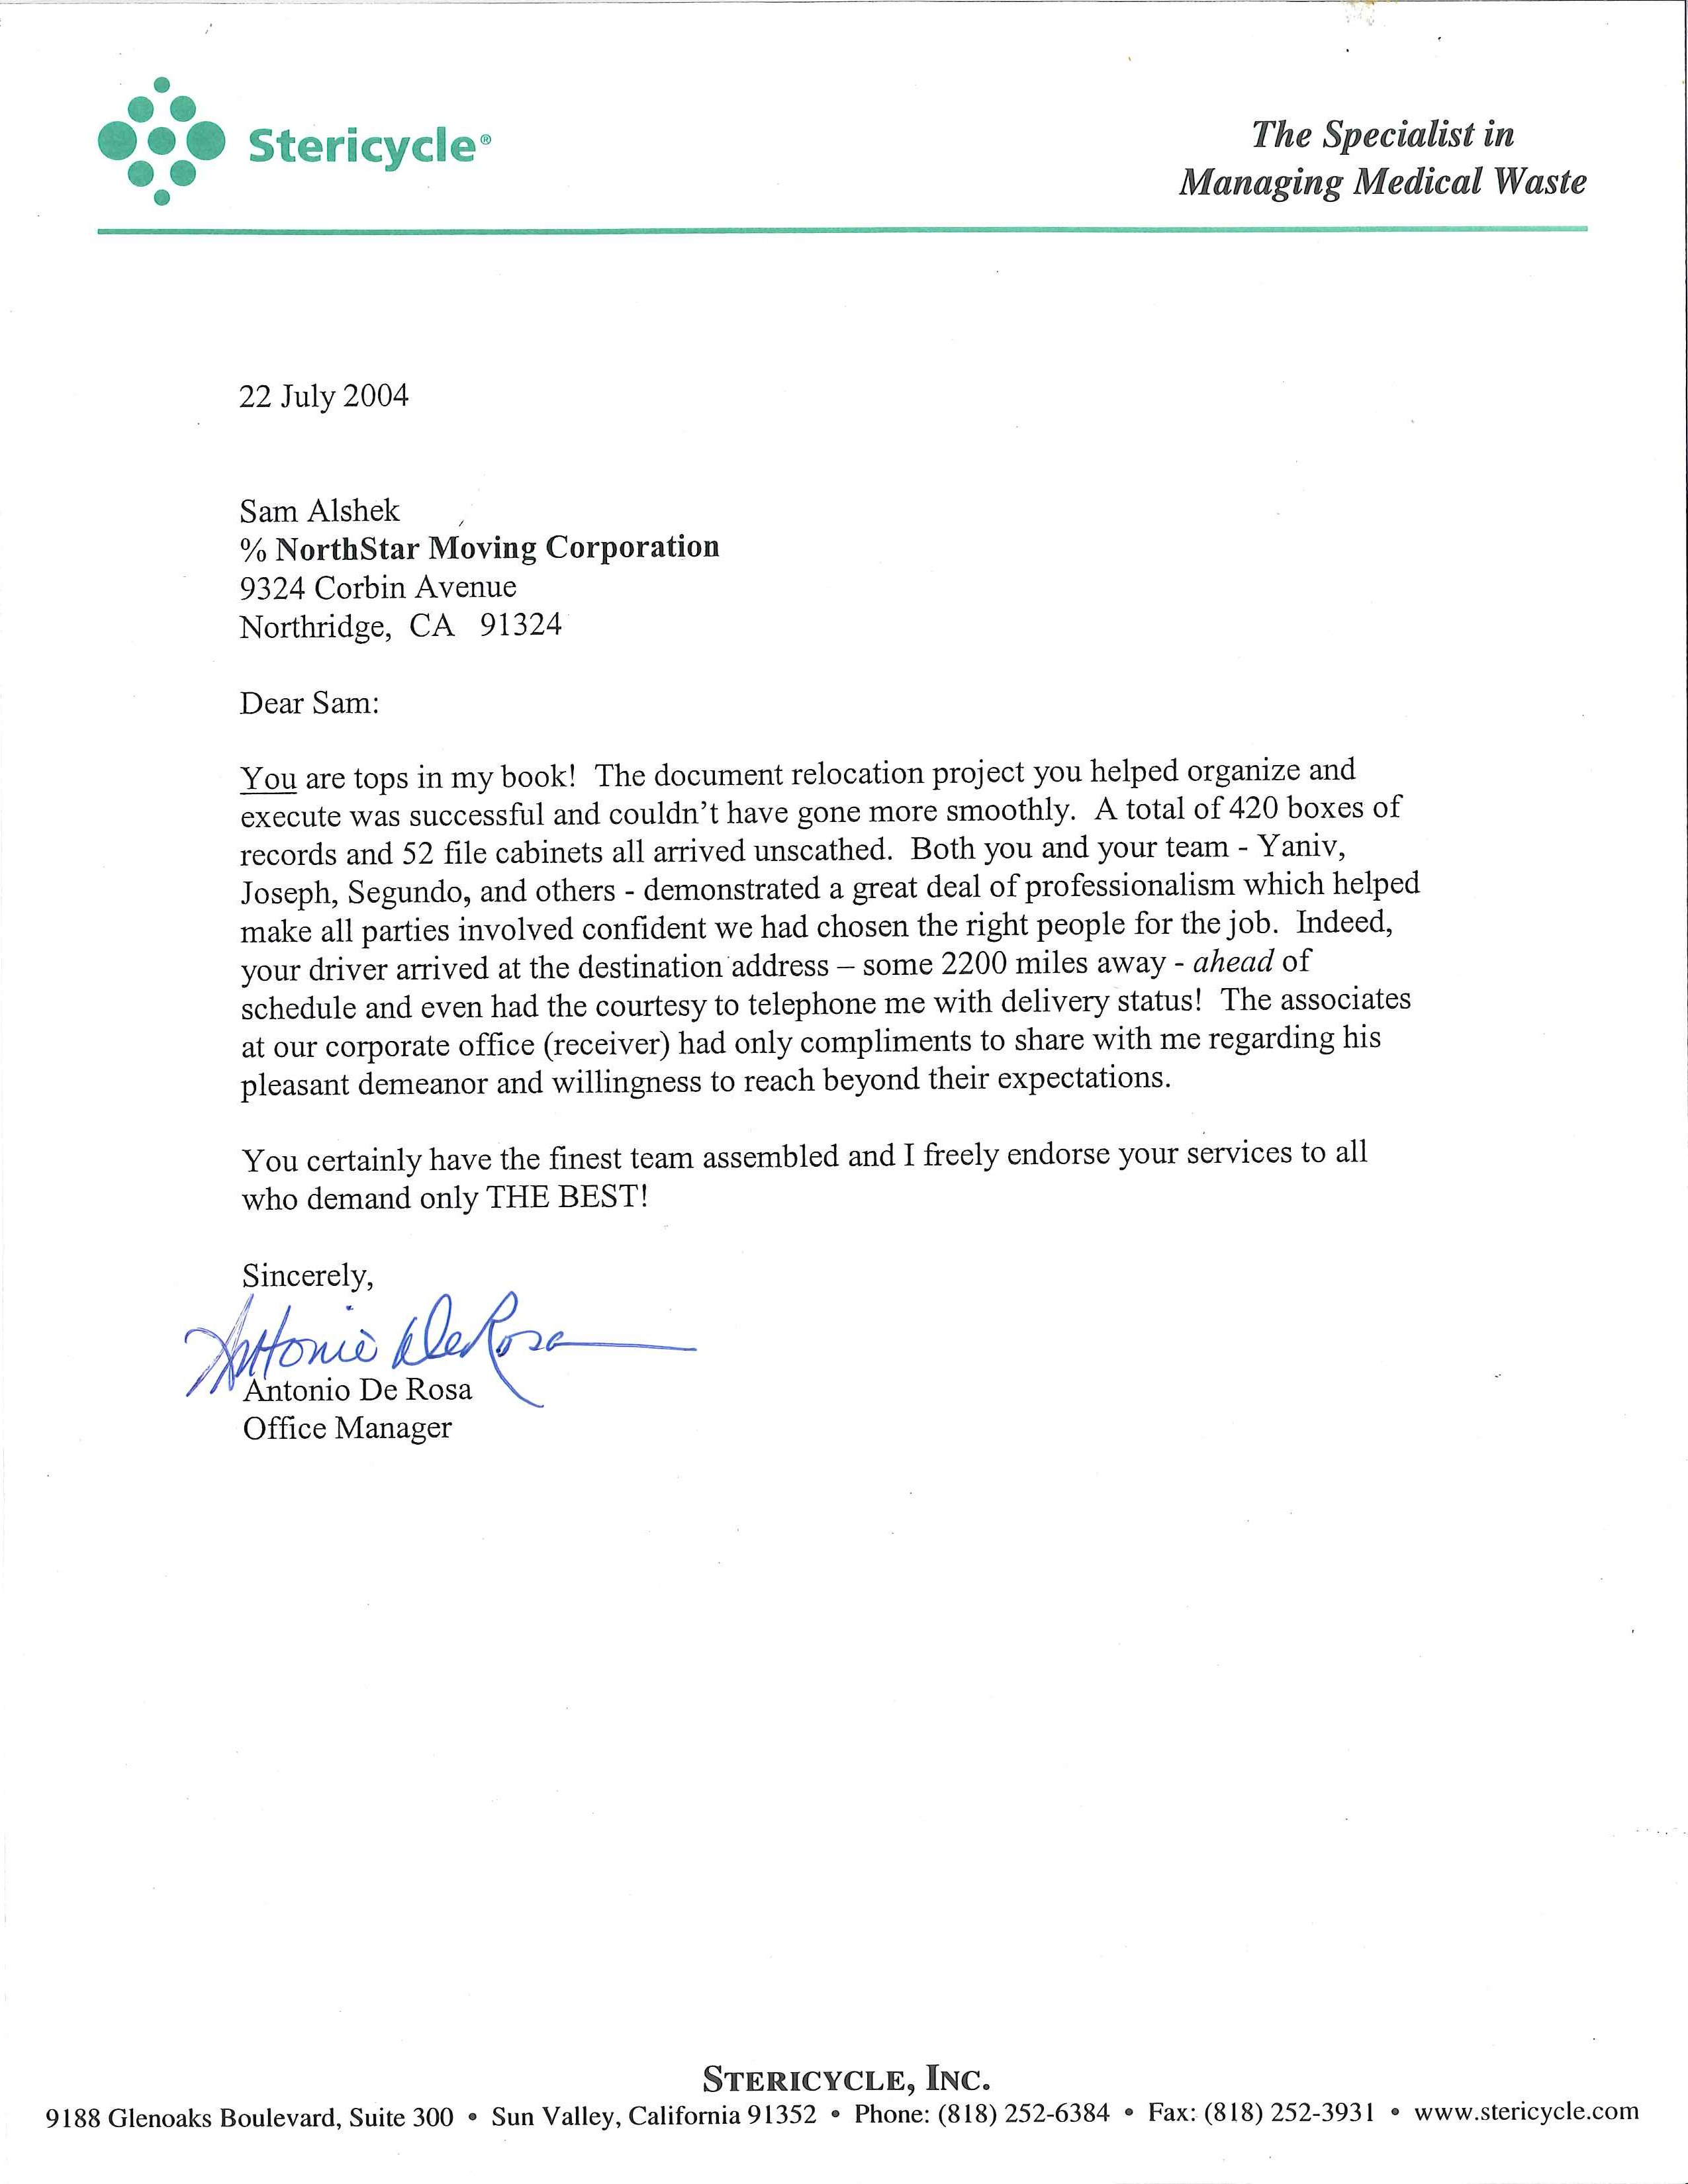 Recommendation Letter From Stericycle